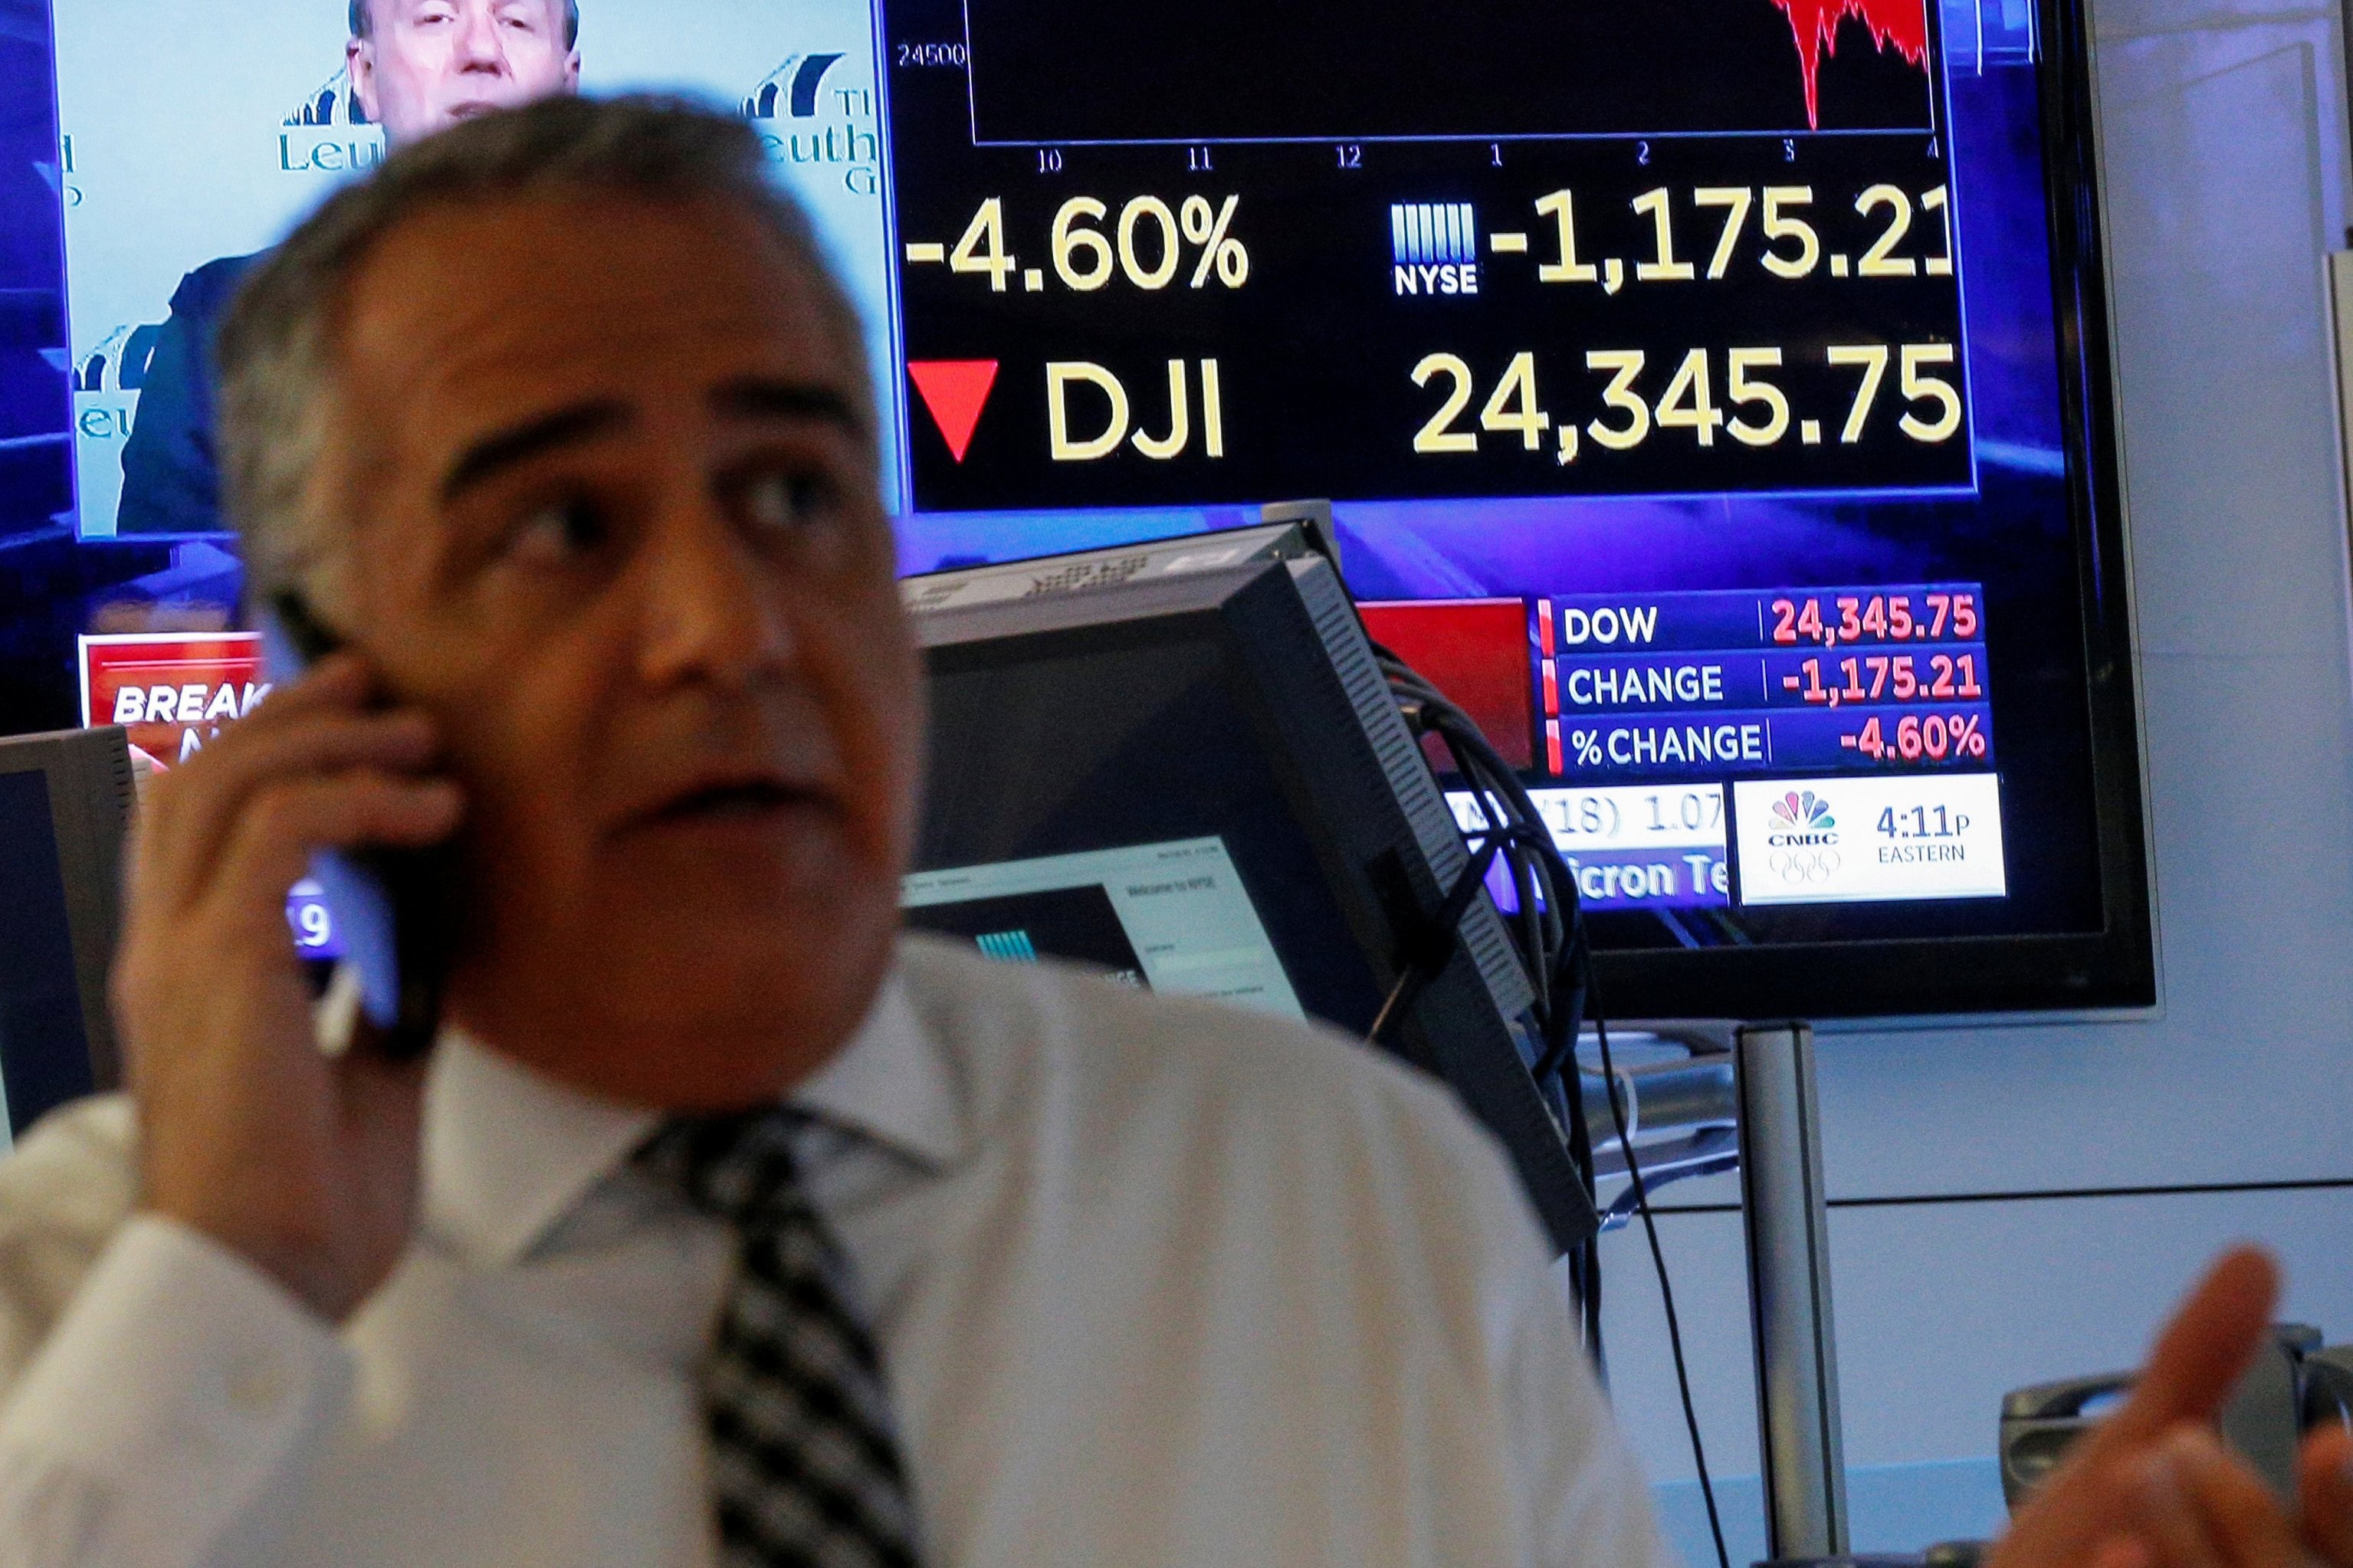 Stocks take a historic hit — and it may only get worse